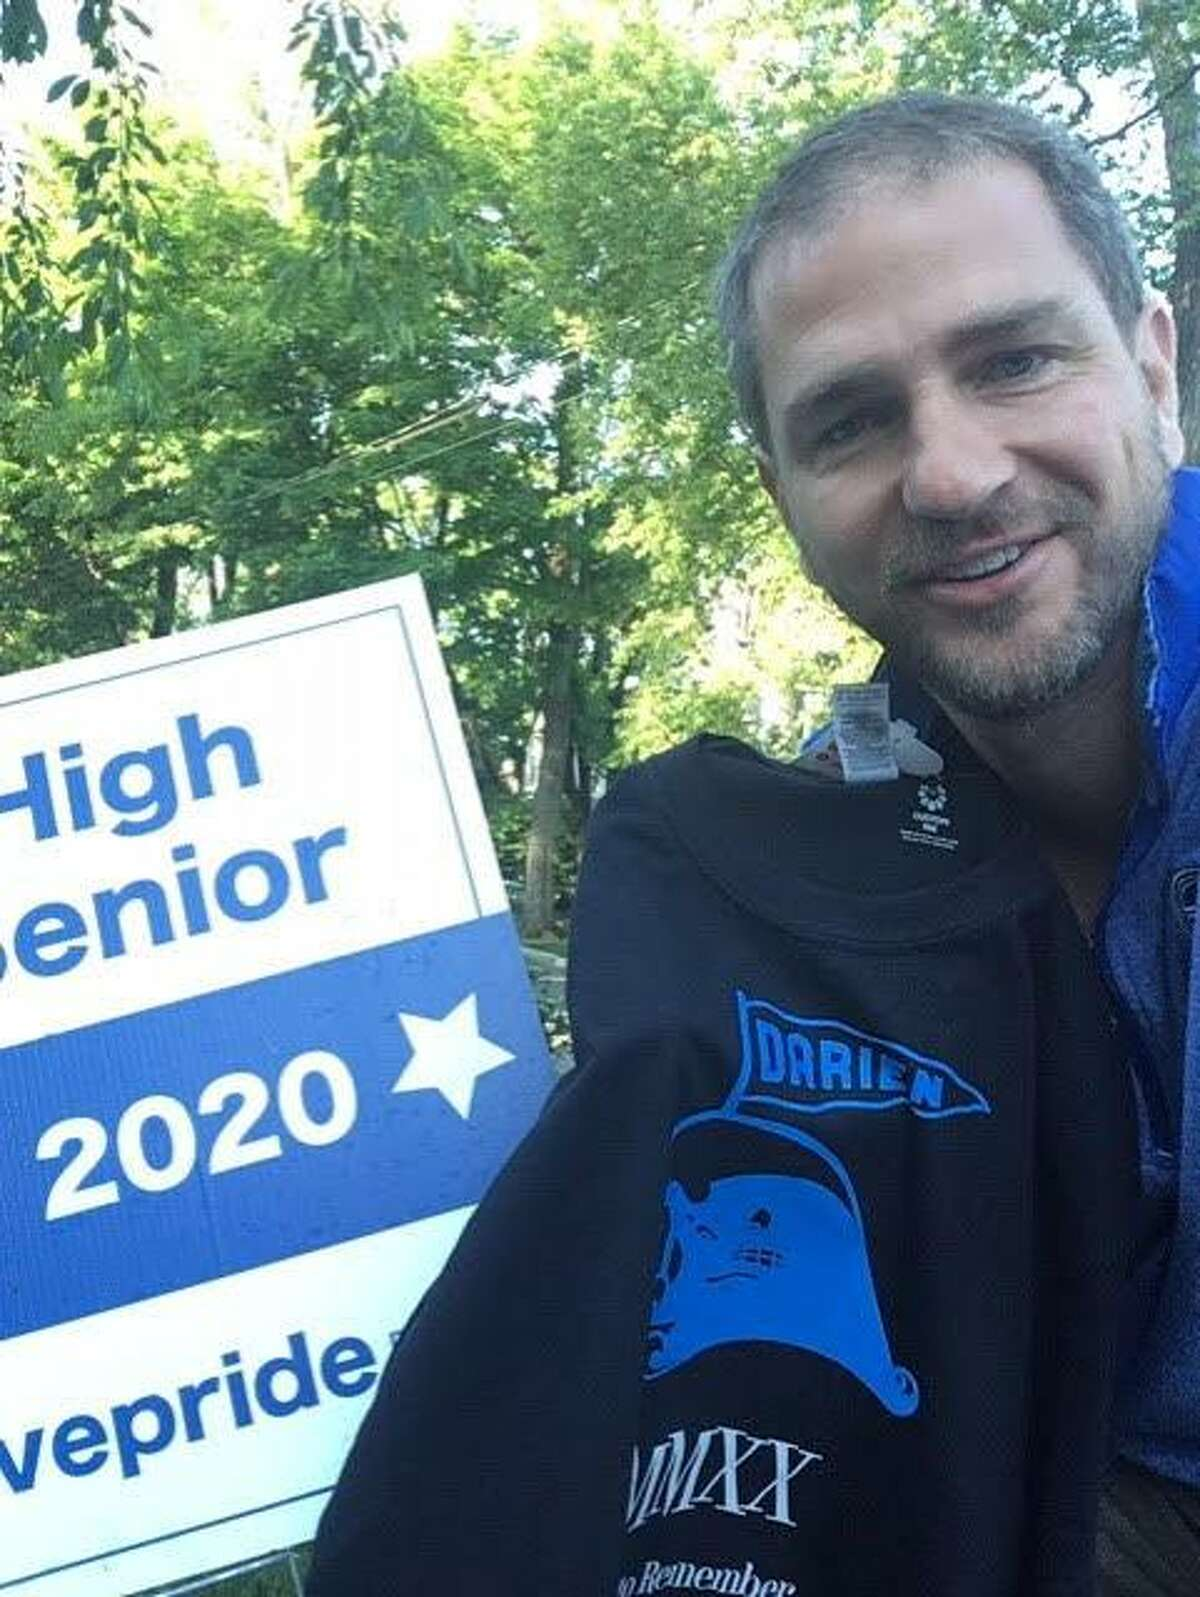 Darien High School seniors were surprised by the school's teachers and administration Monday as they dropped off commemorative t-shirts for each graduate.